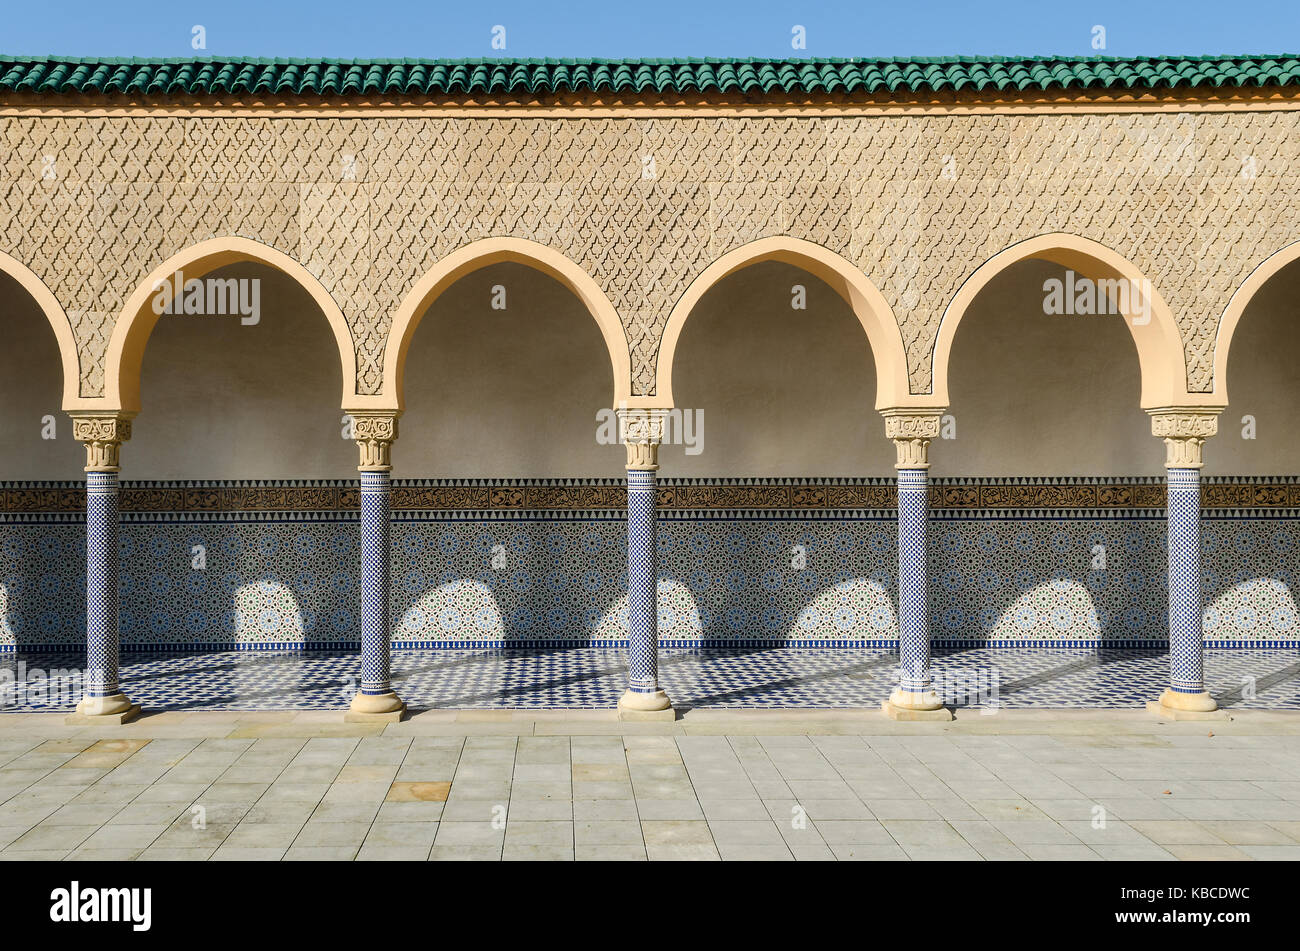 old arabic architecture with portico arcade colonnade - Stock Image